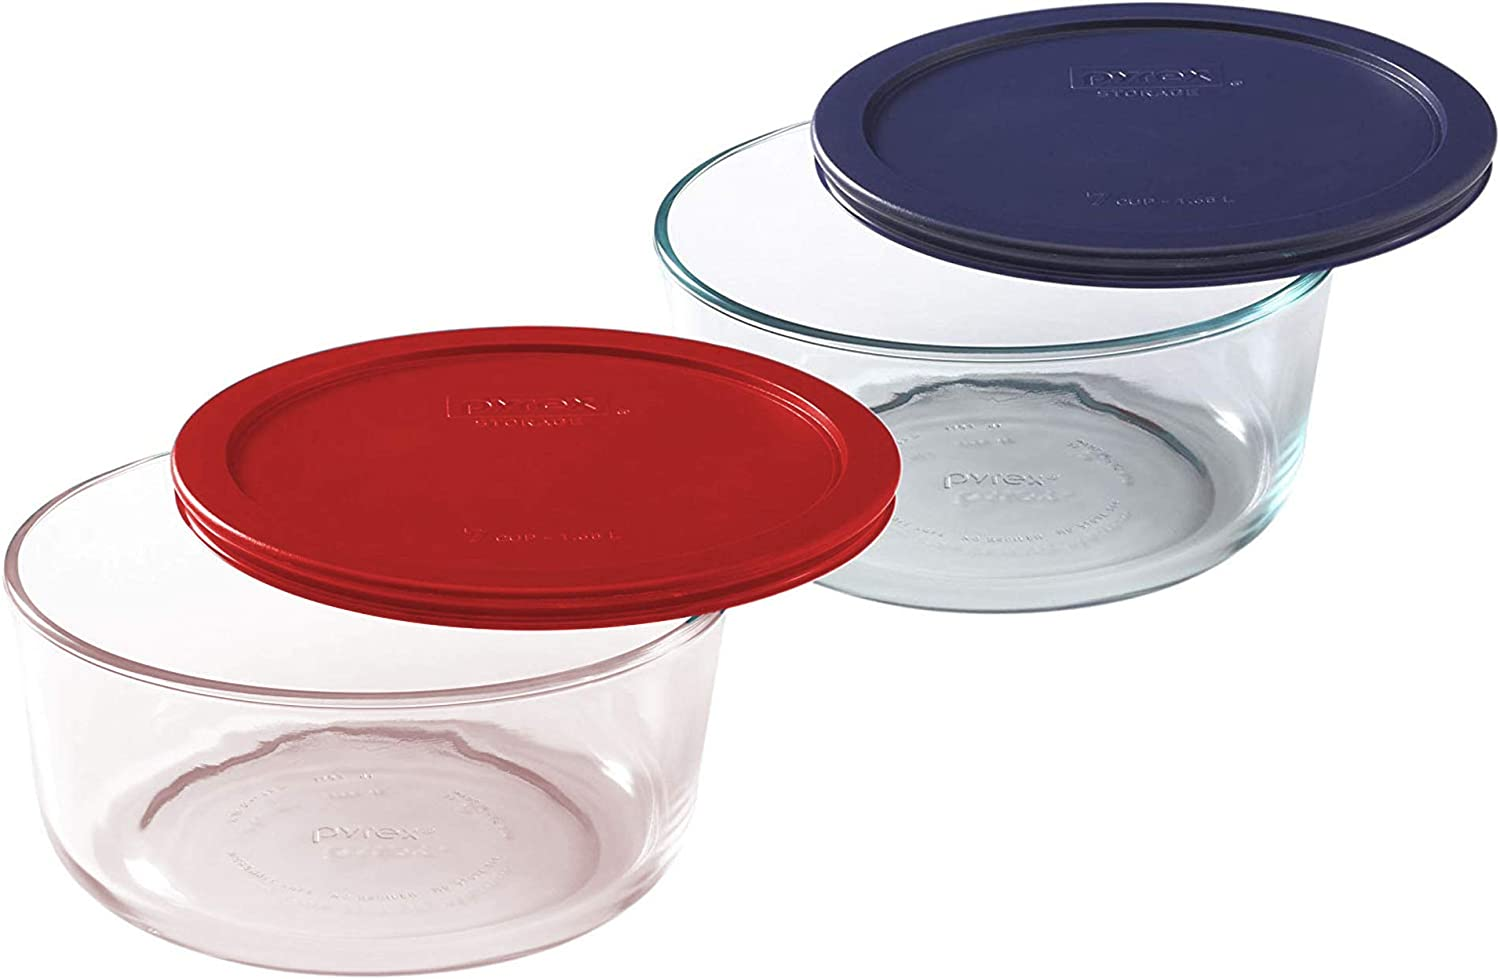 Pyrex Storage 7 Cup Round Dish, Clear with Red + Blue Plastic Lids, Pack of 2 Containers